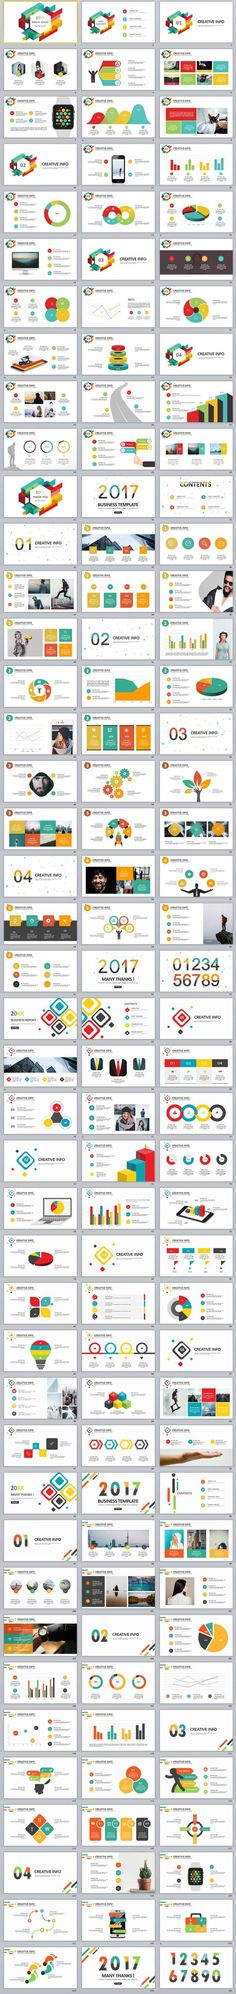 4in1+ company annual report PowerPoint Template Design templates - company report template